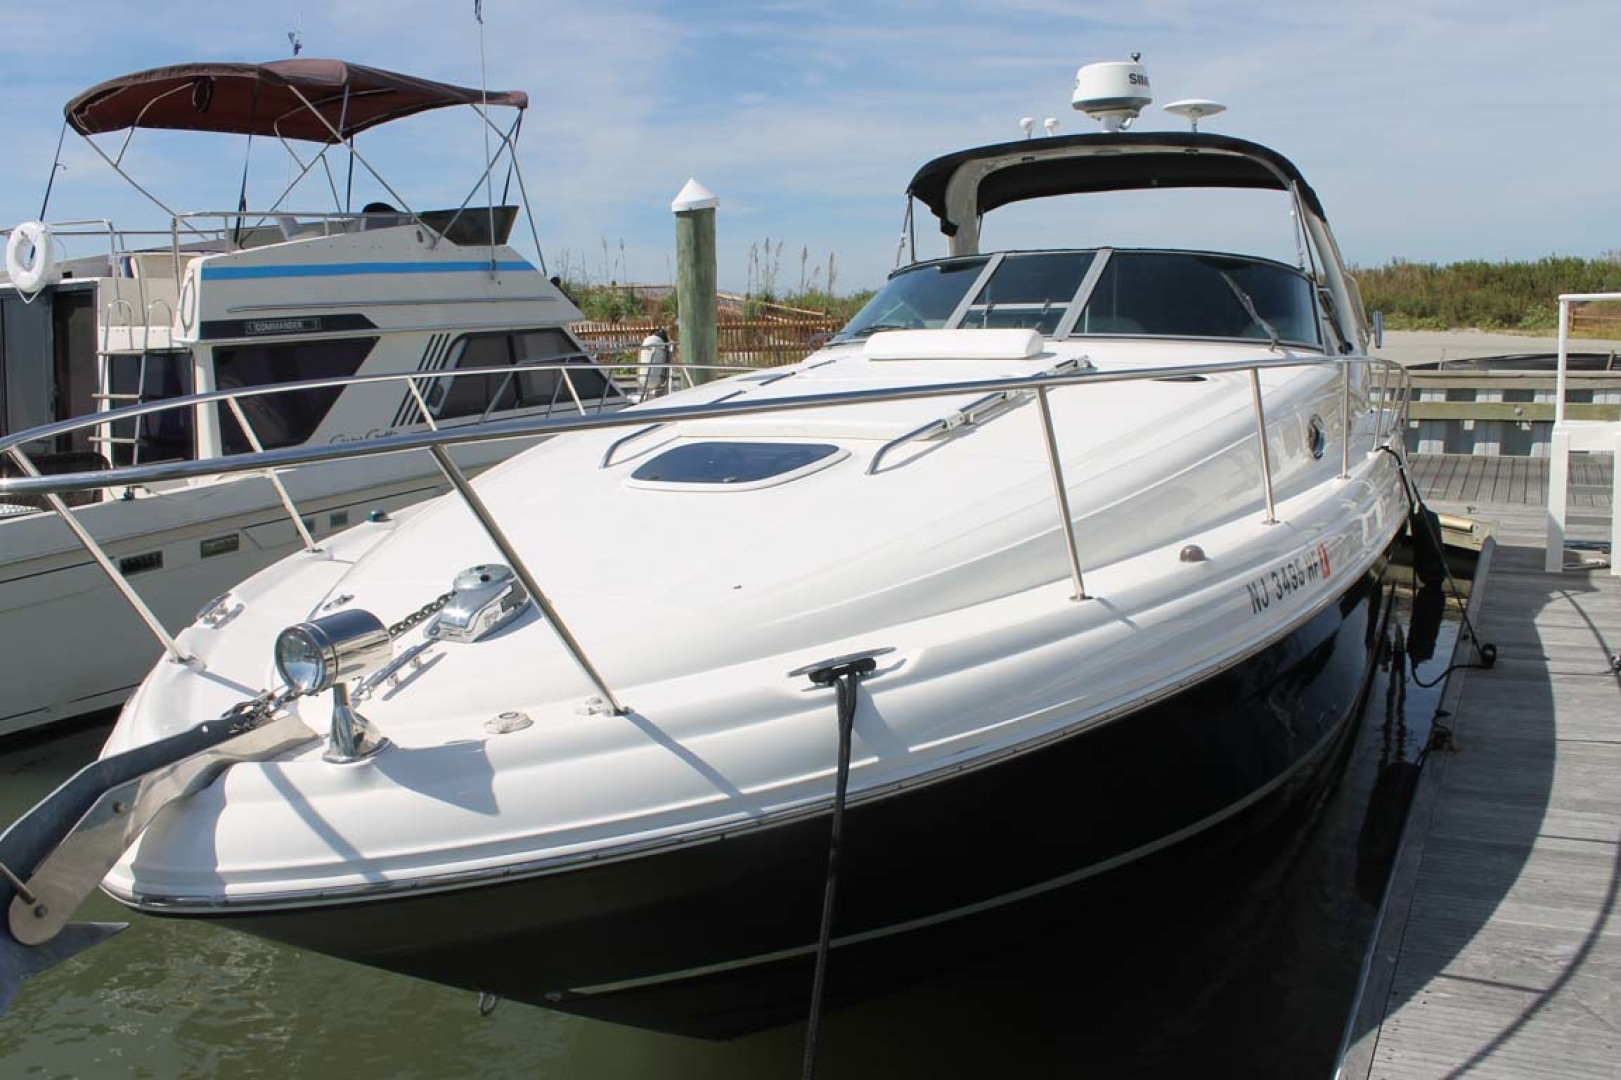 Sea Ray-340 Sundancer 2008-Miss Leah Somers Point-New Jersey-United States-Profile-1242055 | Thumbnail